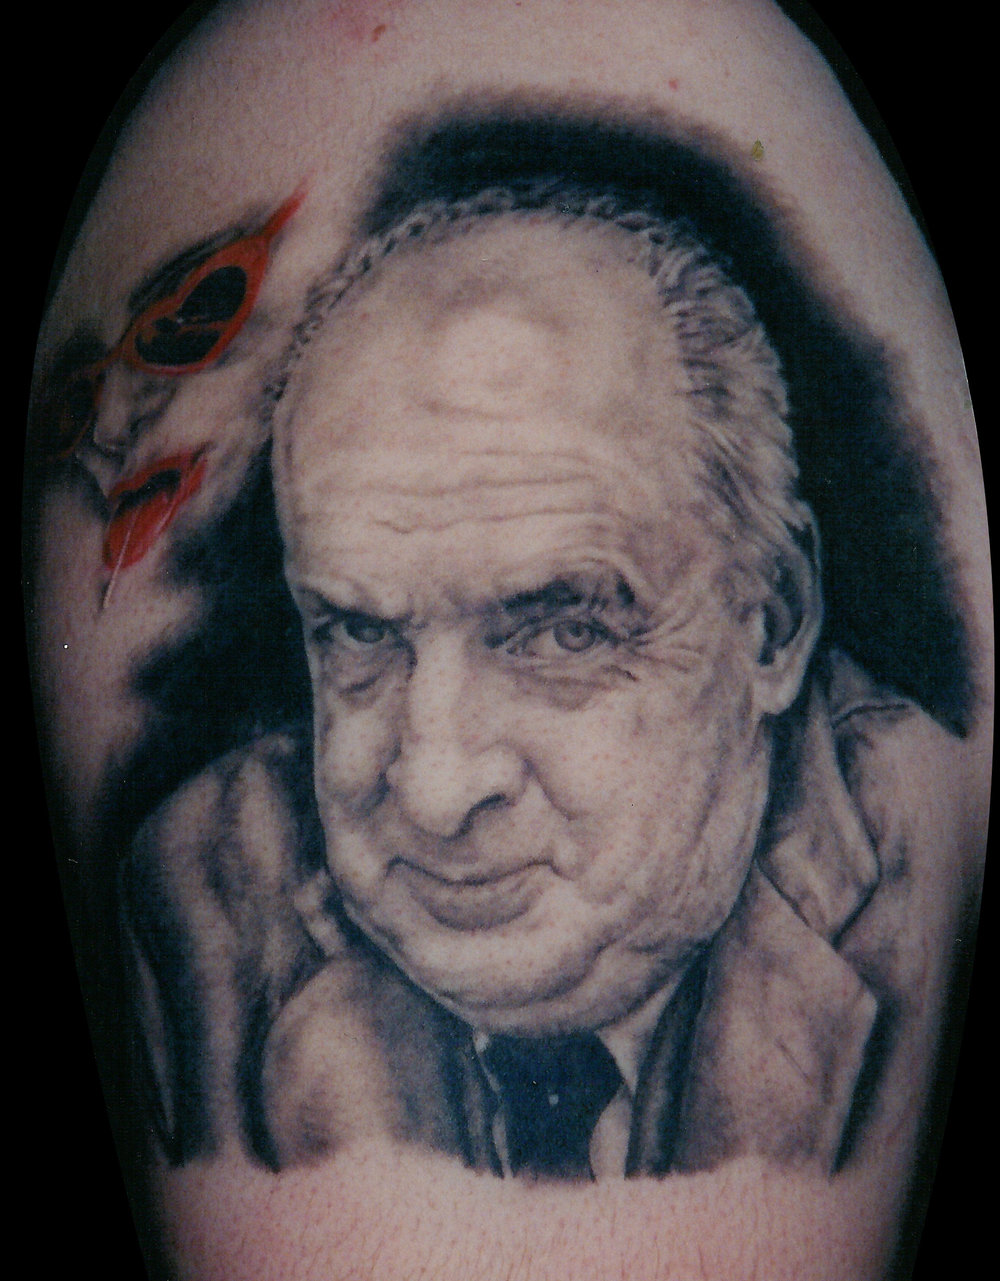 Black and Grey Vladimir Nabokov Portrait Tattoo, (healed) 1999